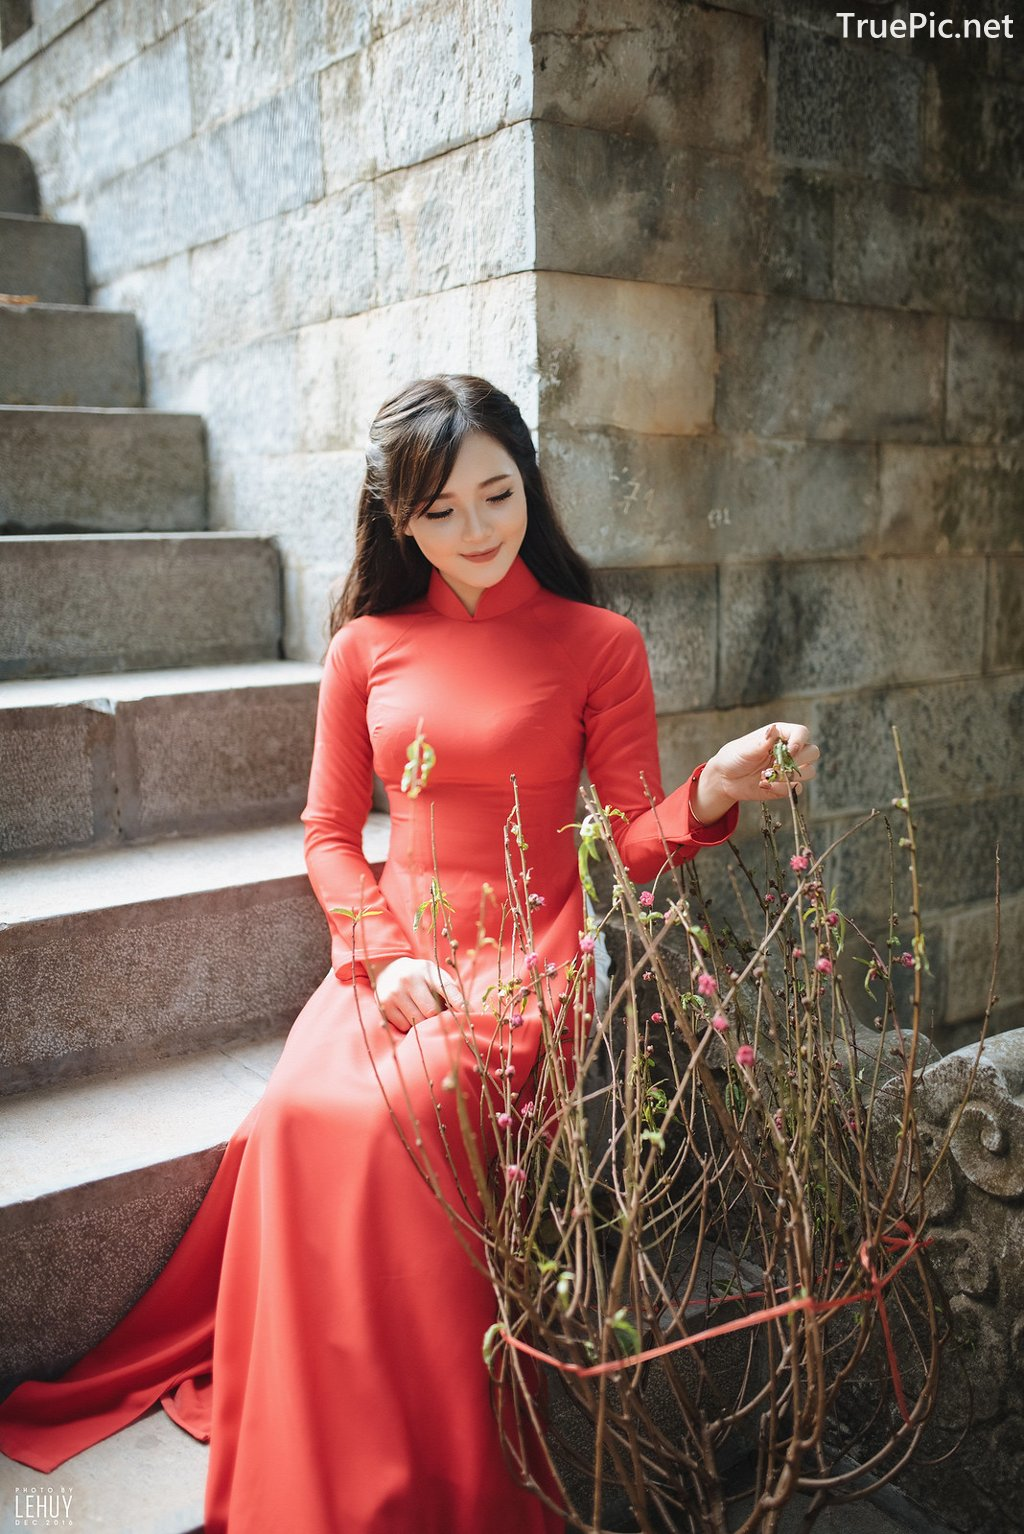 Image-Vietnamese-Model-Beautiful-Girl-and-Ao-Dai-Red-Vietnamese-Traditional-Dress-TruePic.net- Picture-7